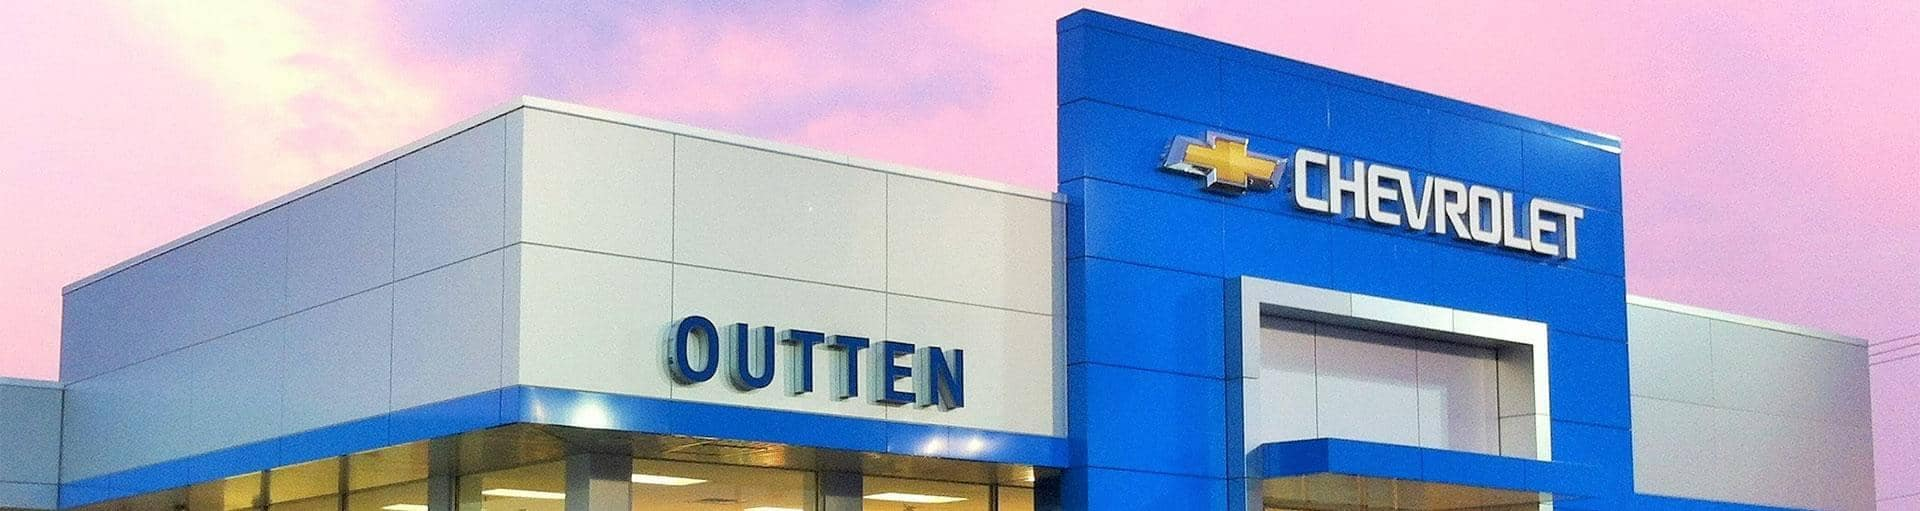 Outten Chevy Dealership Outside